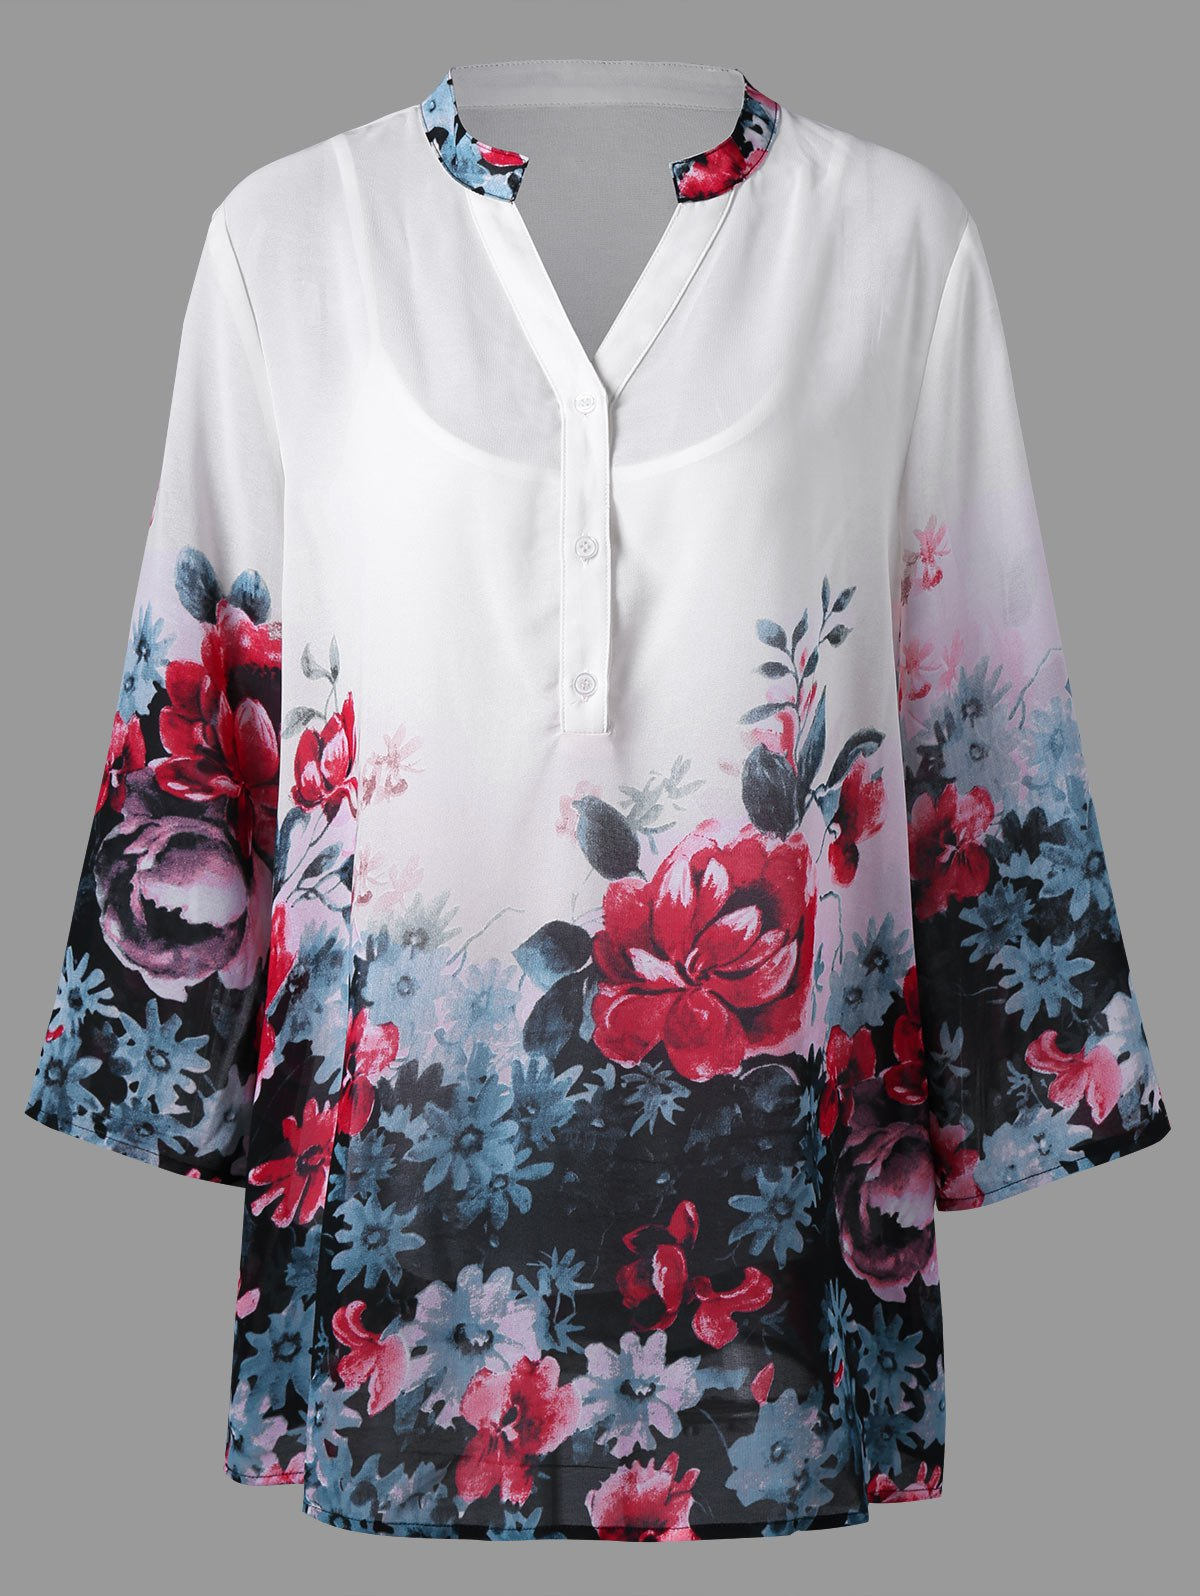 Plus Size Split Neck Floral Blouse with Camisole studio m new black white printed split neck womens size small s tunic blouse $78